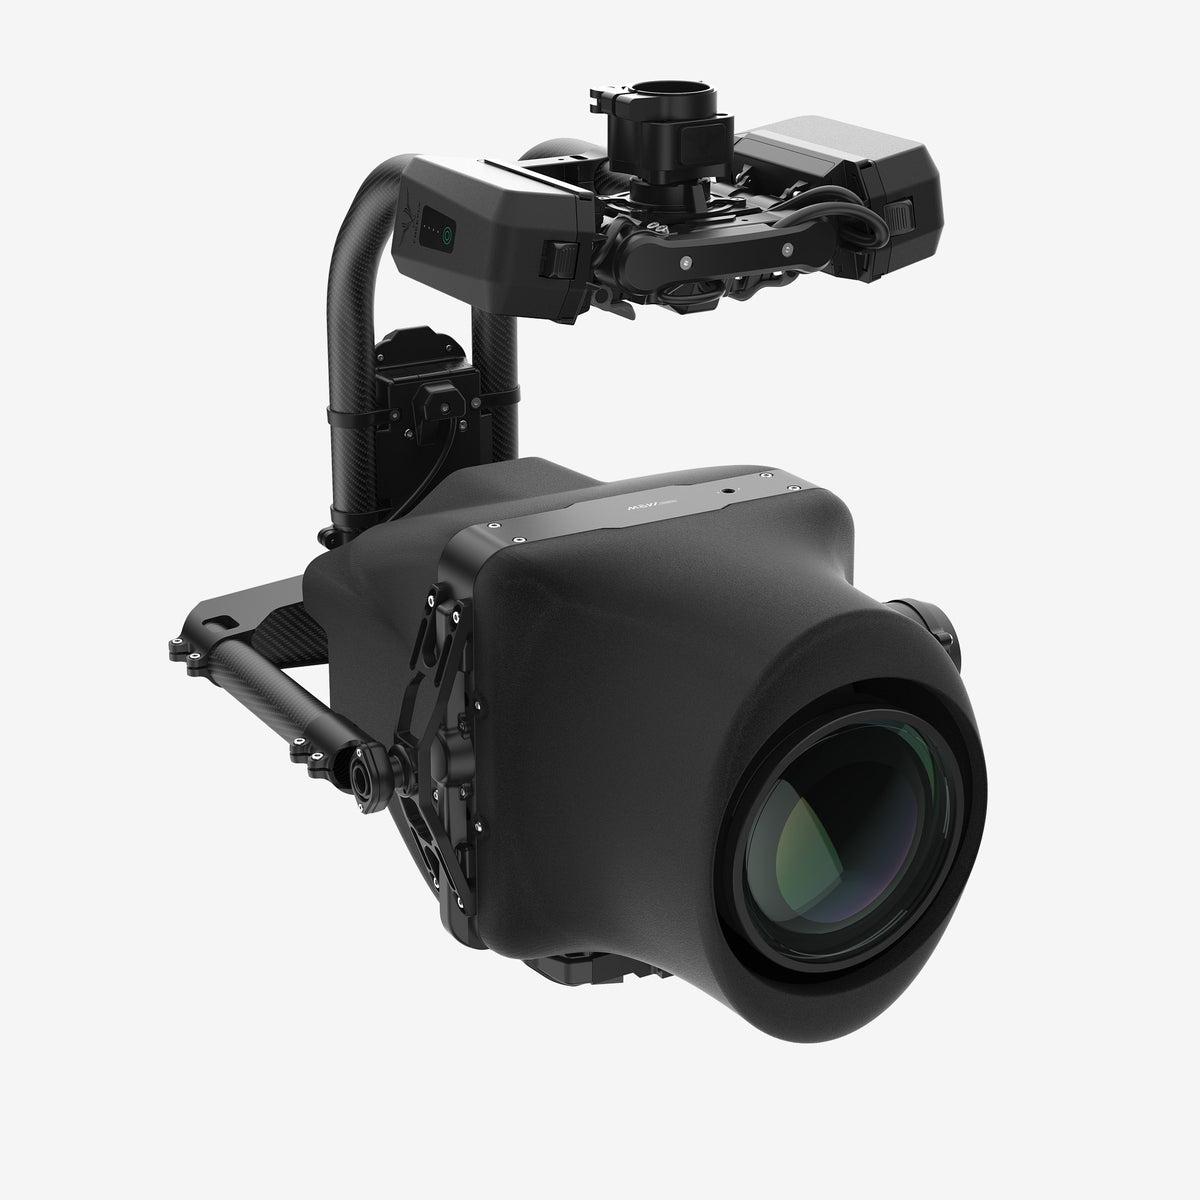 MōVI Carbon Weekly Rental